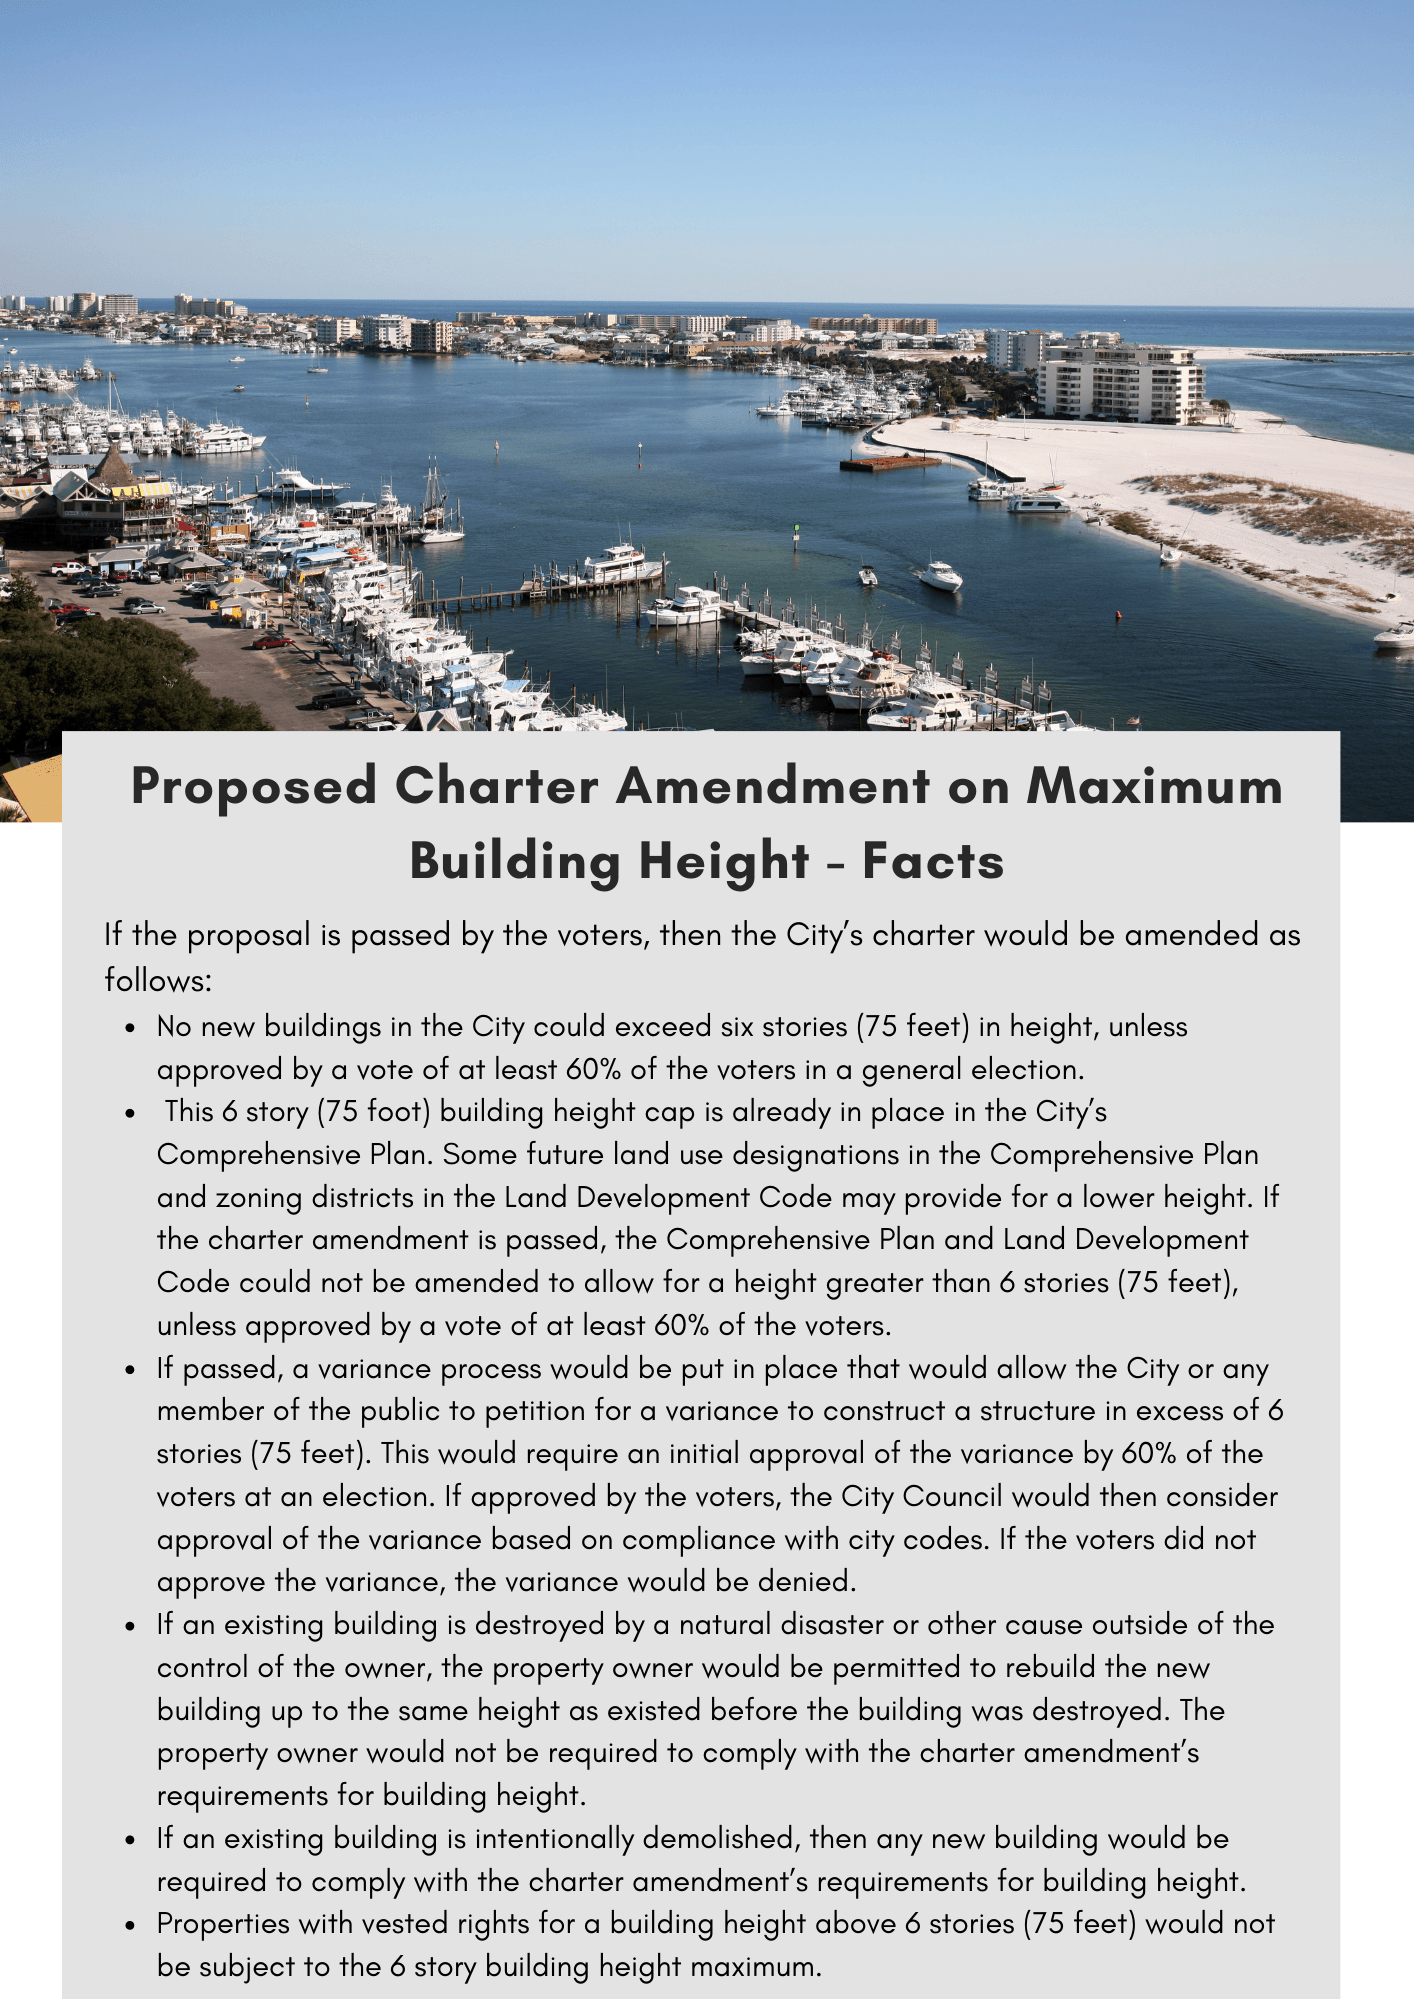 Proposed Charter Amendment on Maximum Building Height - Facts